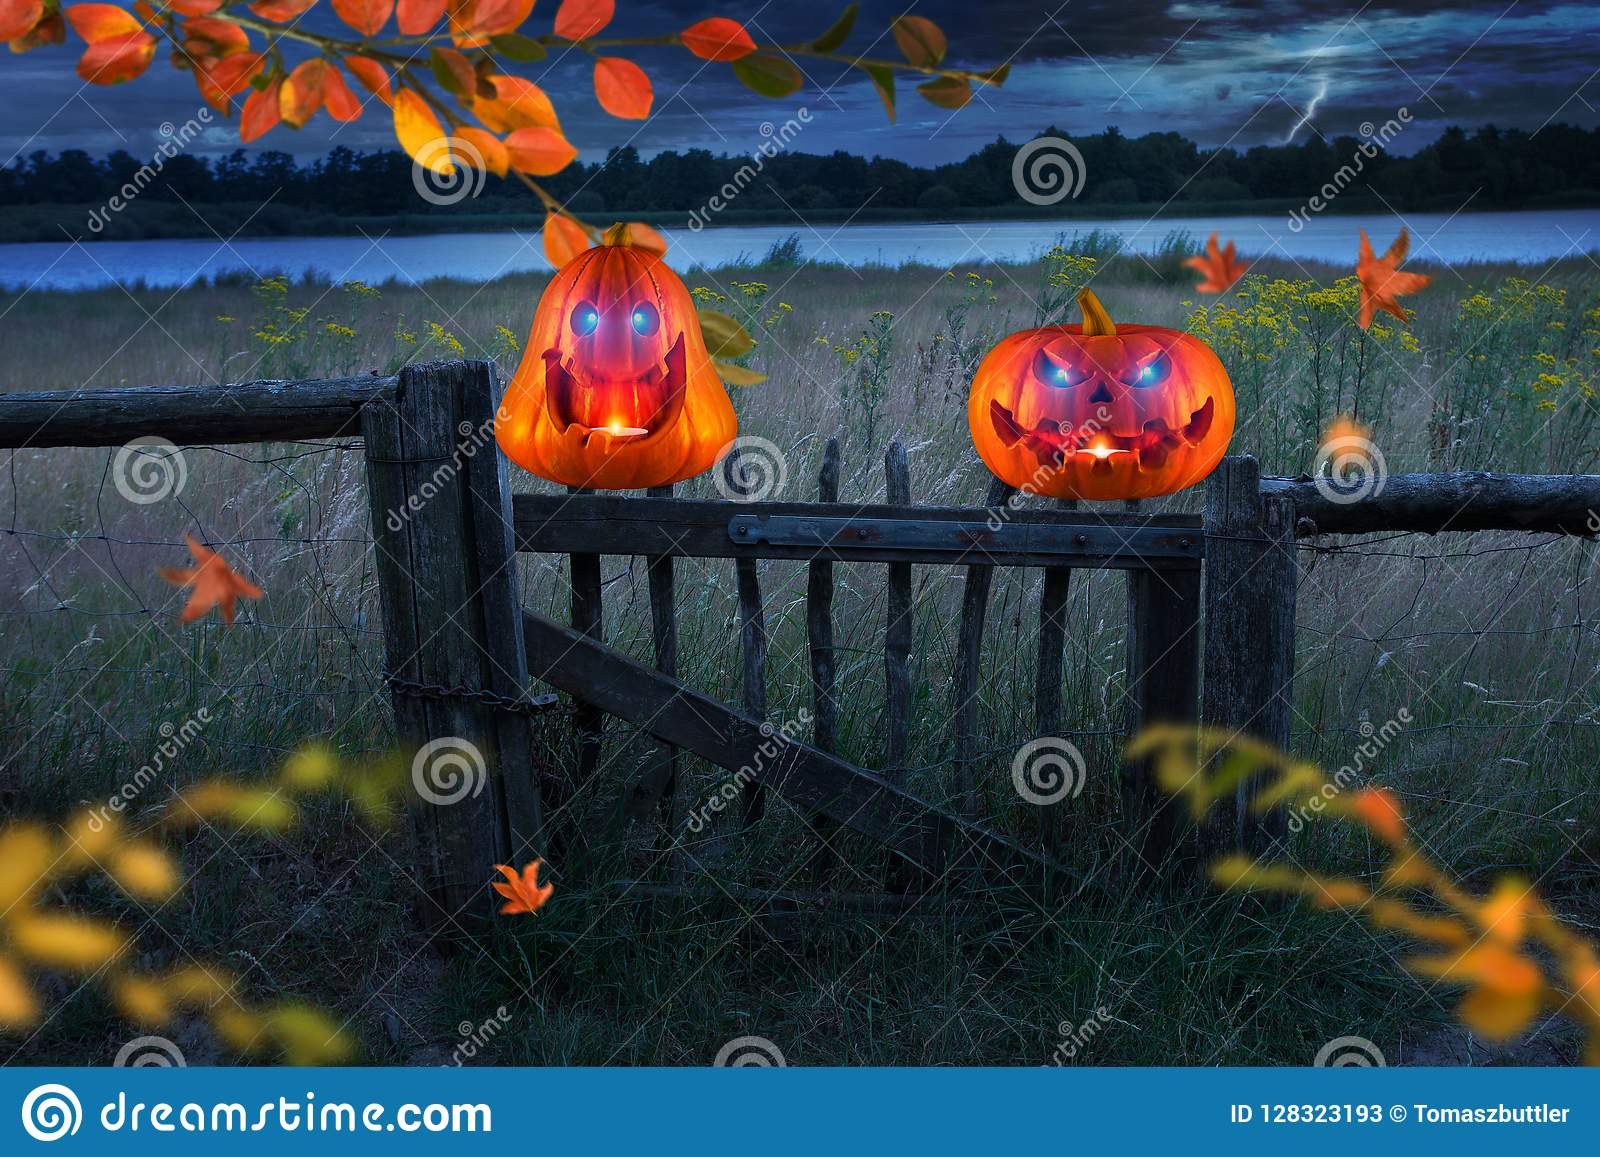 Two funny scary orange pumpkins with glowing eyes on wooden fence at halloween thunderstorm night